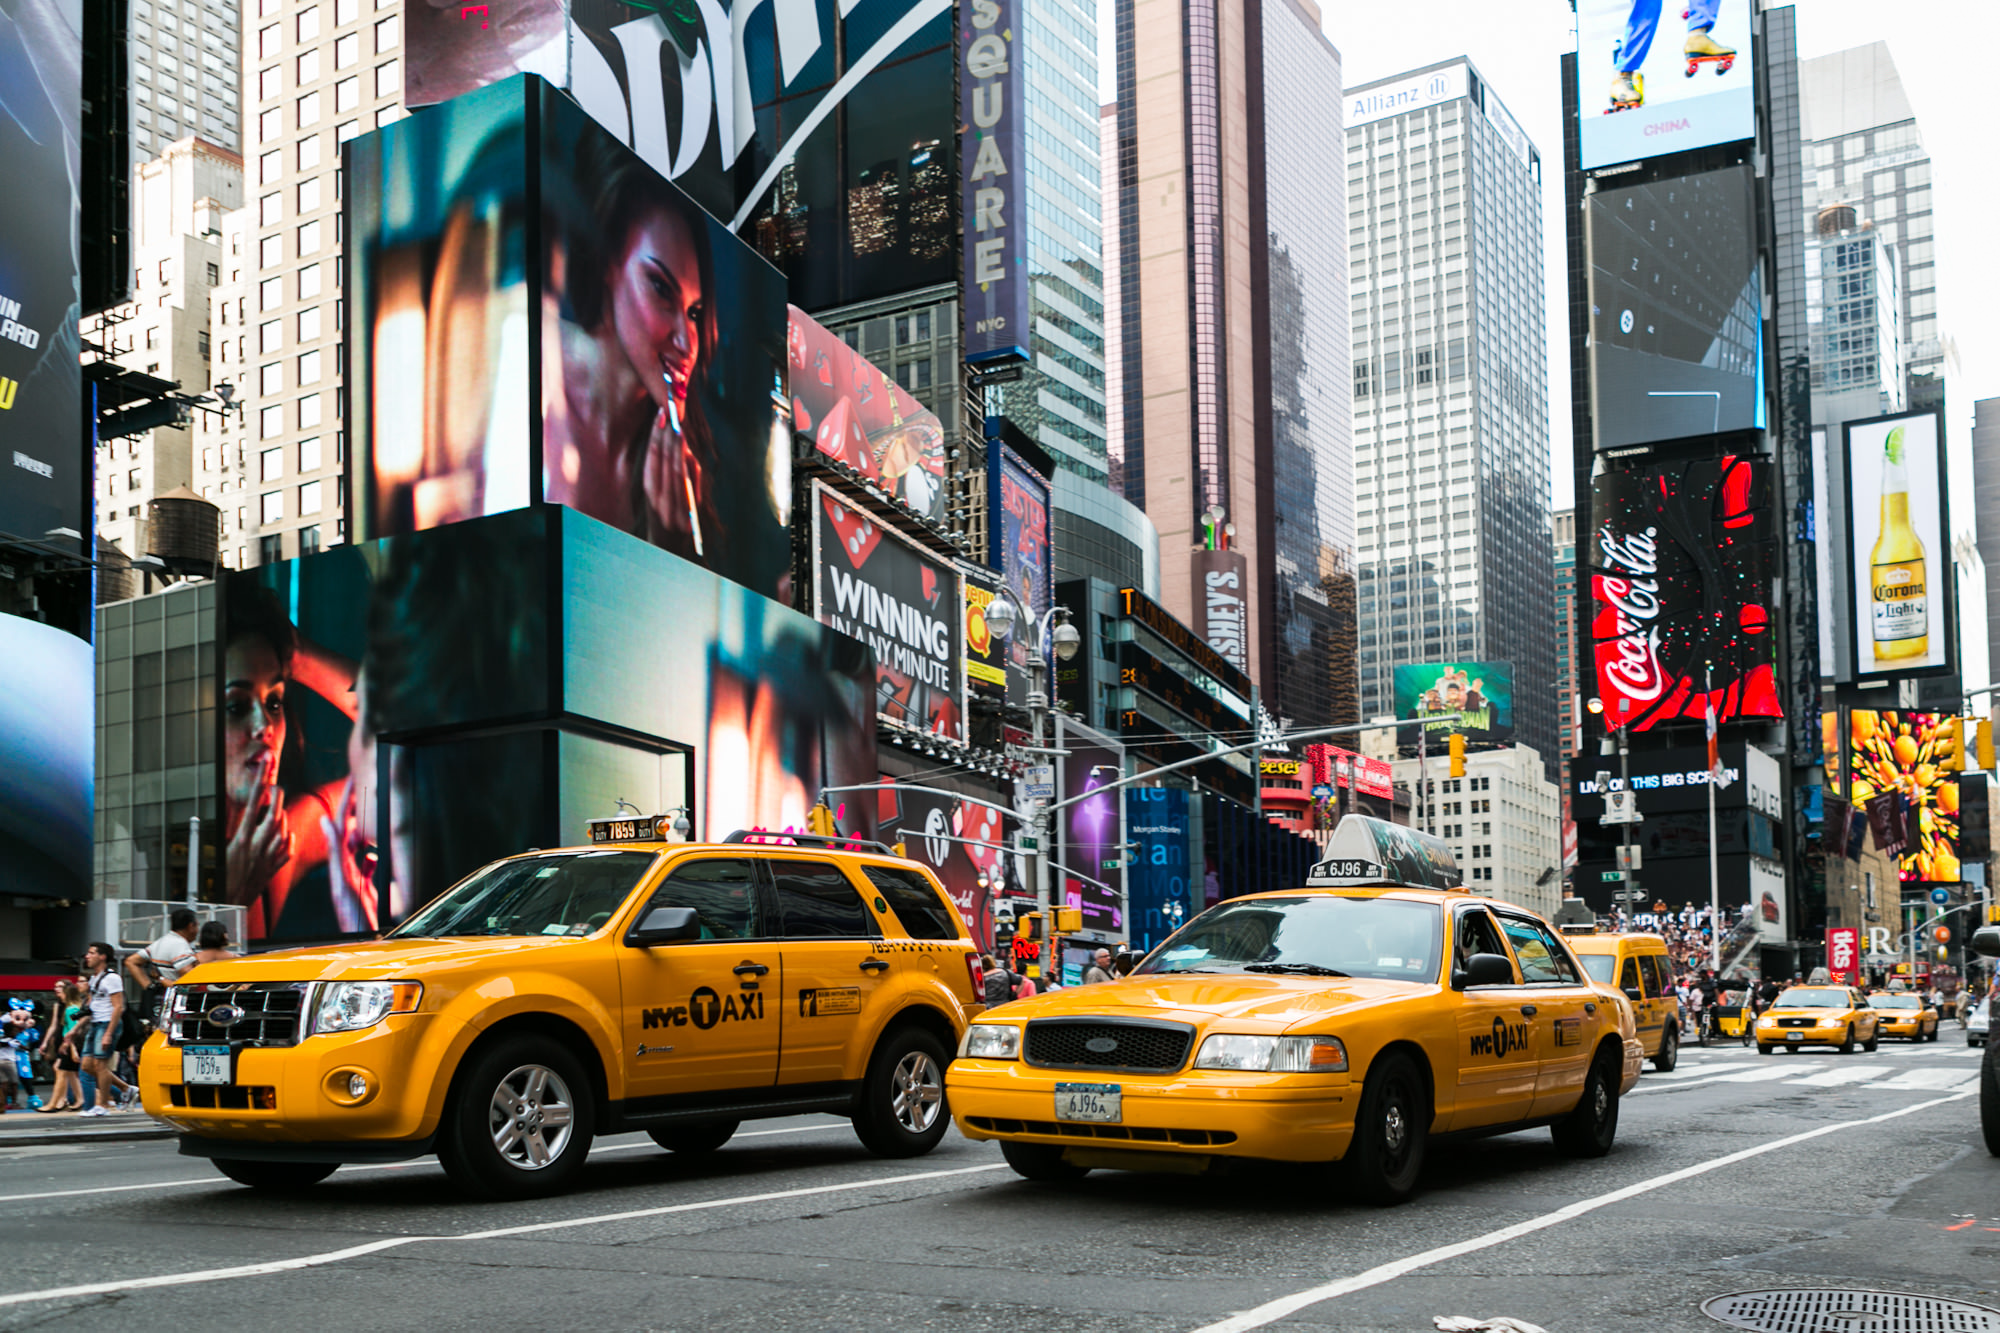 New York's famous Time Square, ads and yellow taxis everywhere